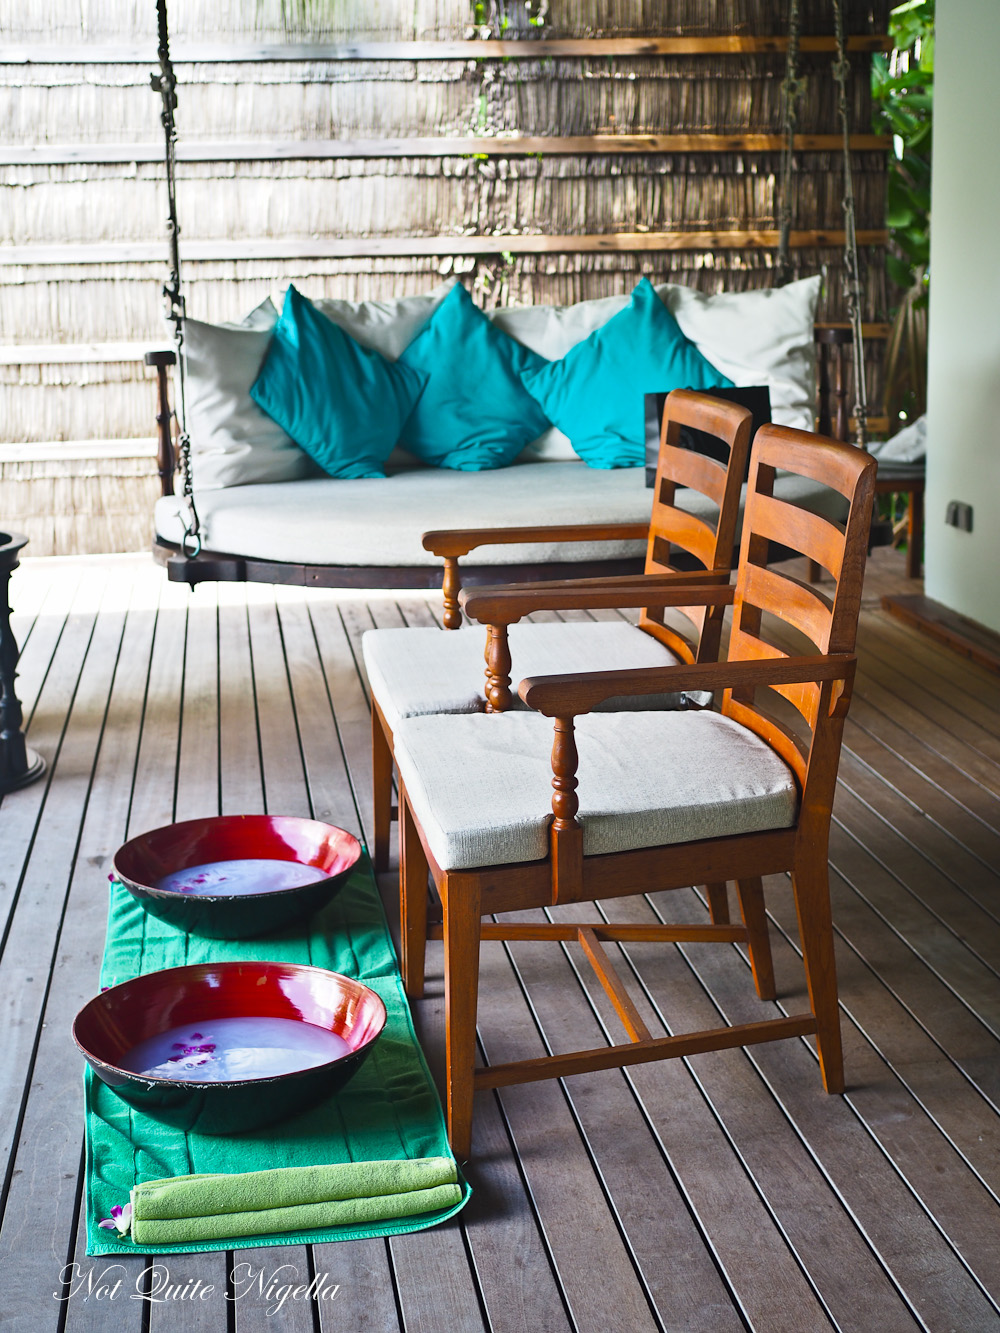 Anantara Kihavah Maldives review